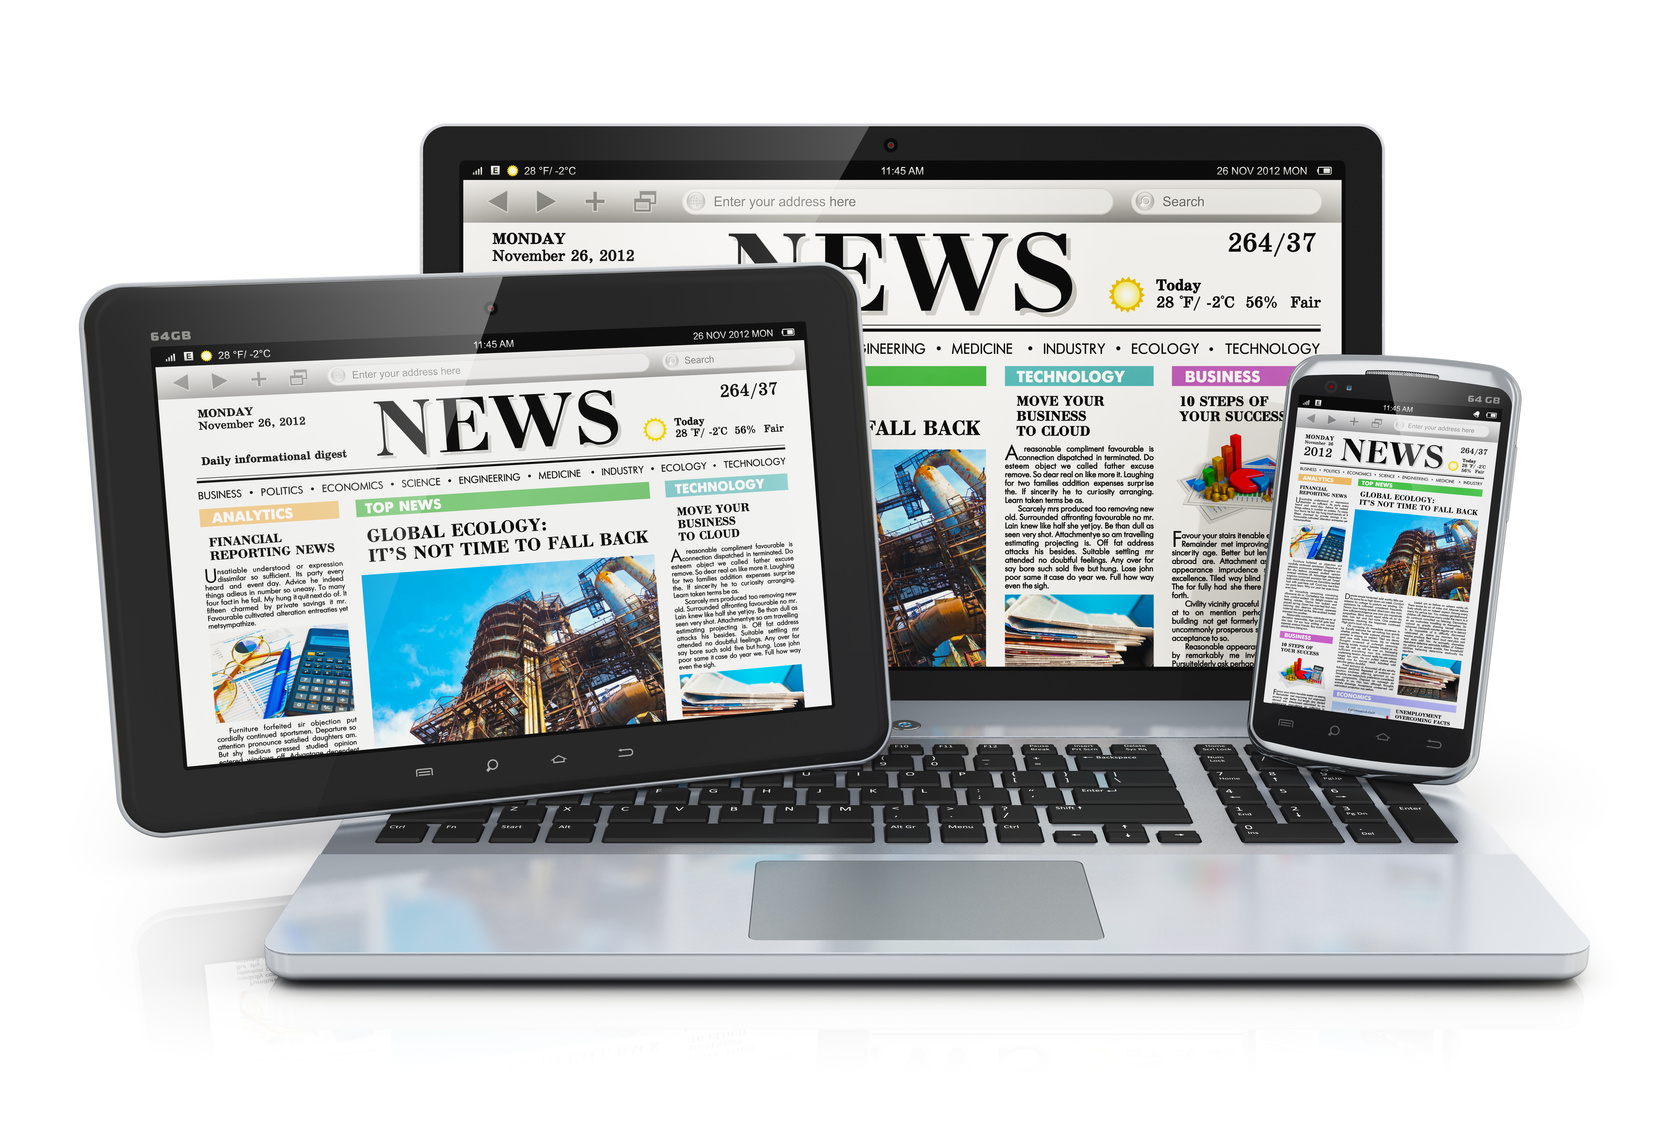 newspaper article on computer technology Enjoy these six tech articles as we come down the homestretch into the weekend ibm announced last week it has moved its cognitive computing system into the cloud to form the watson discovery.